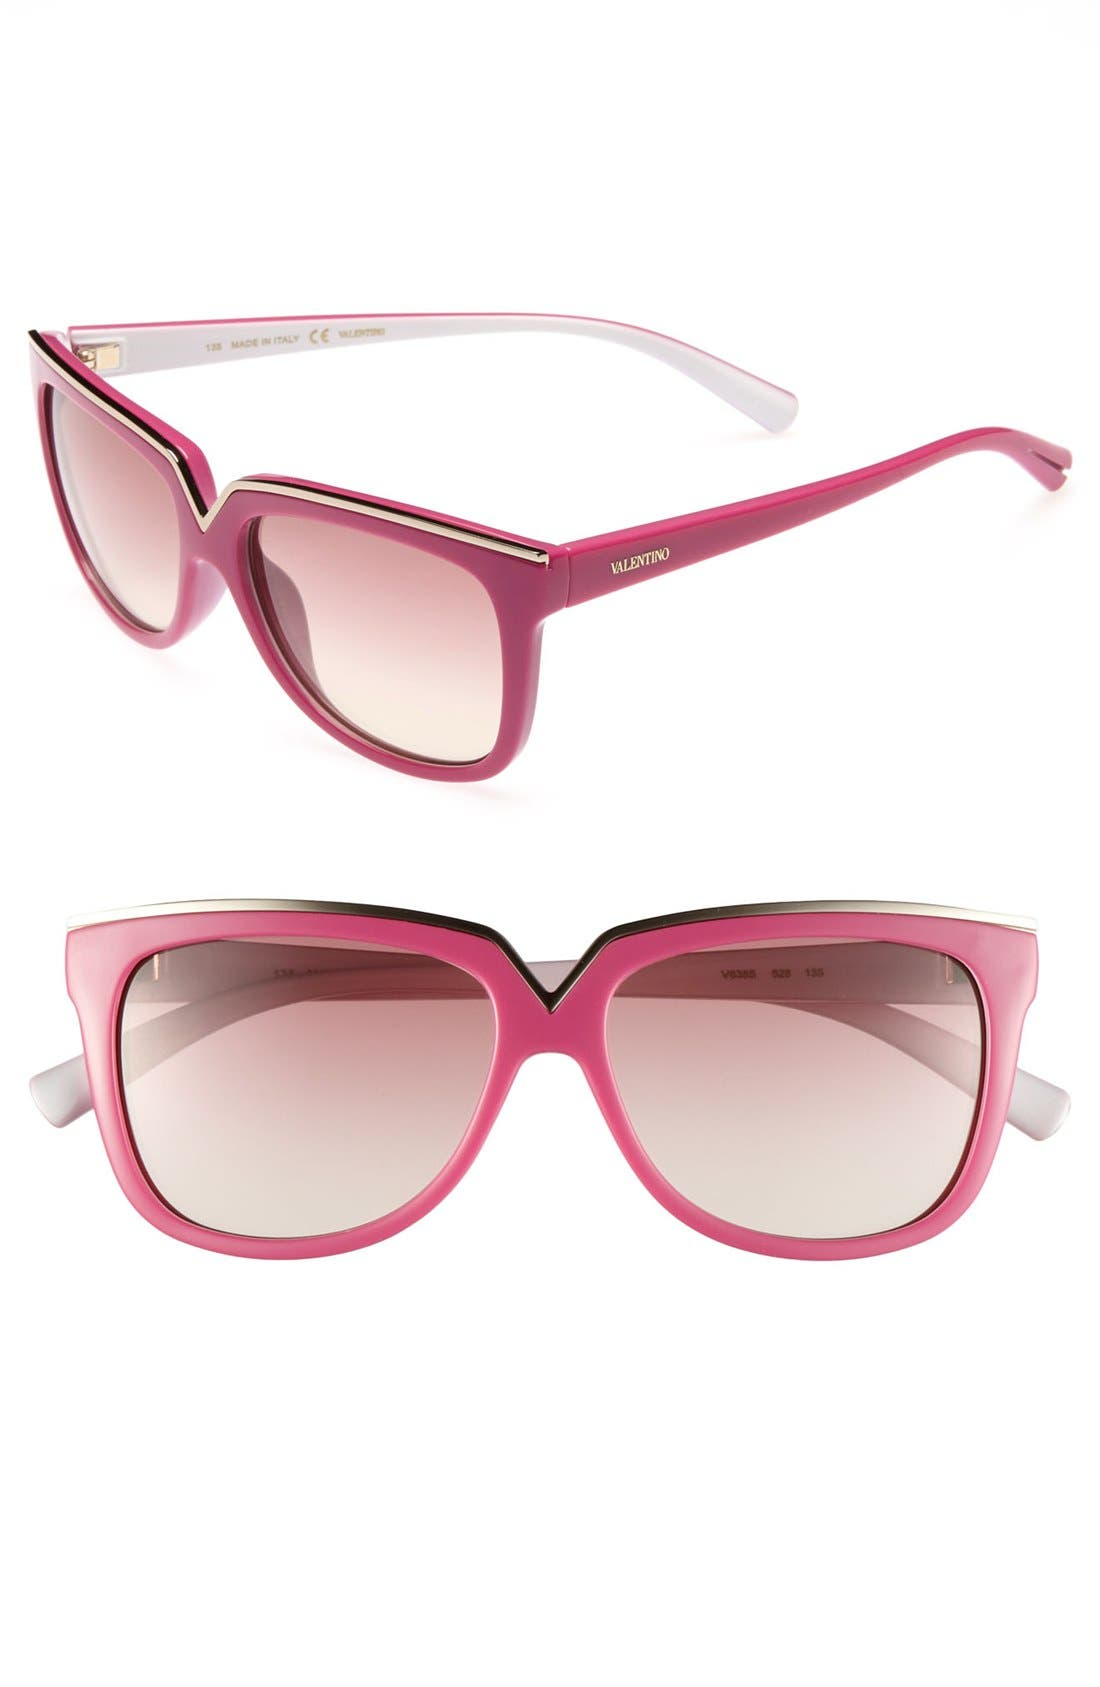 Main Image - Valentino 53mm Sunglasses